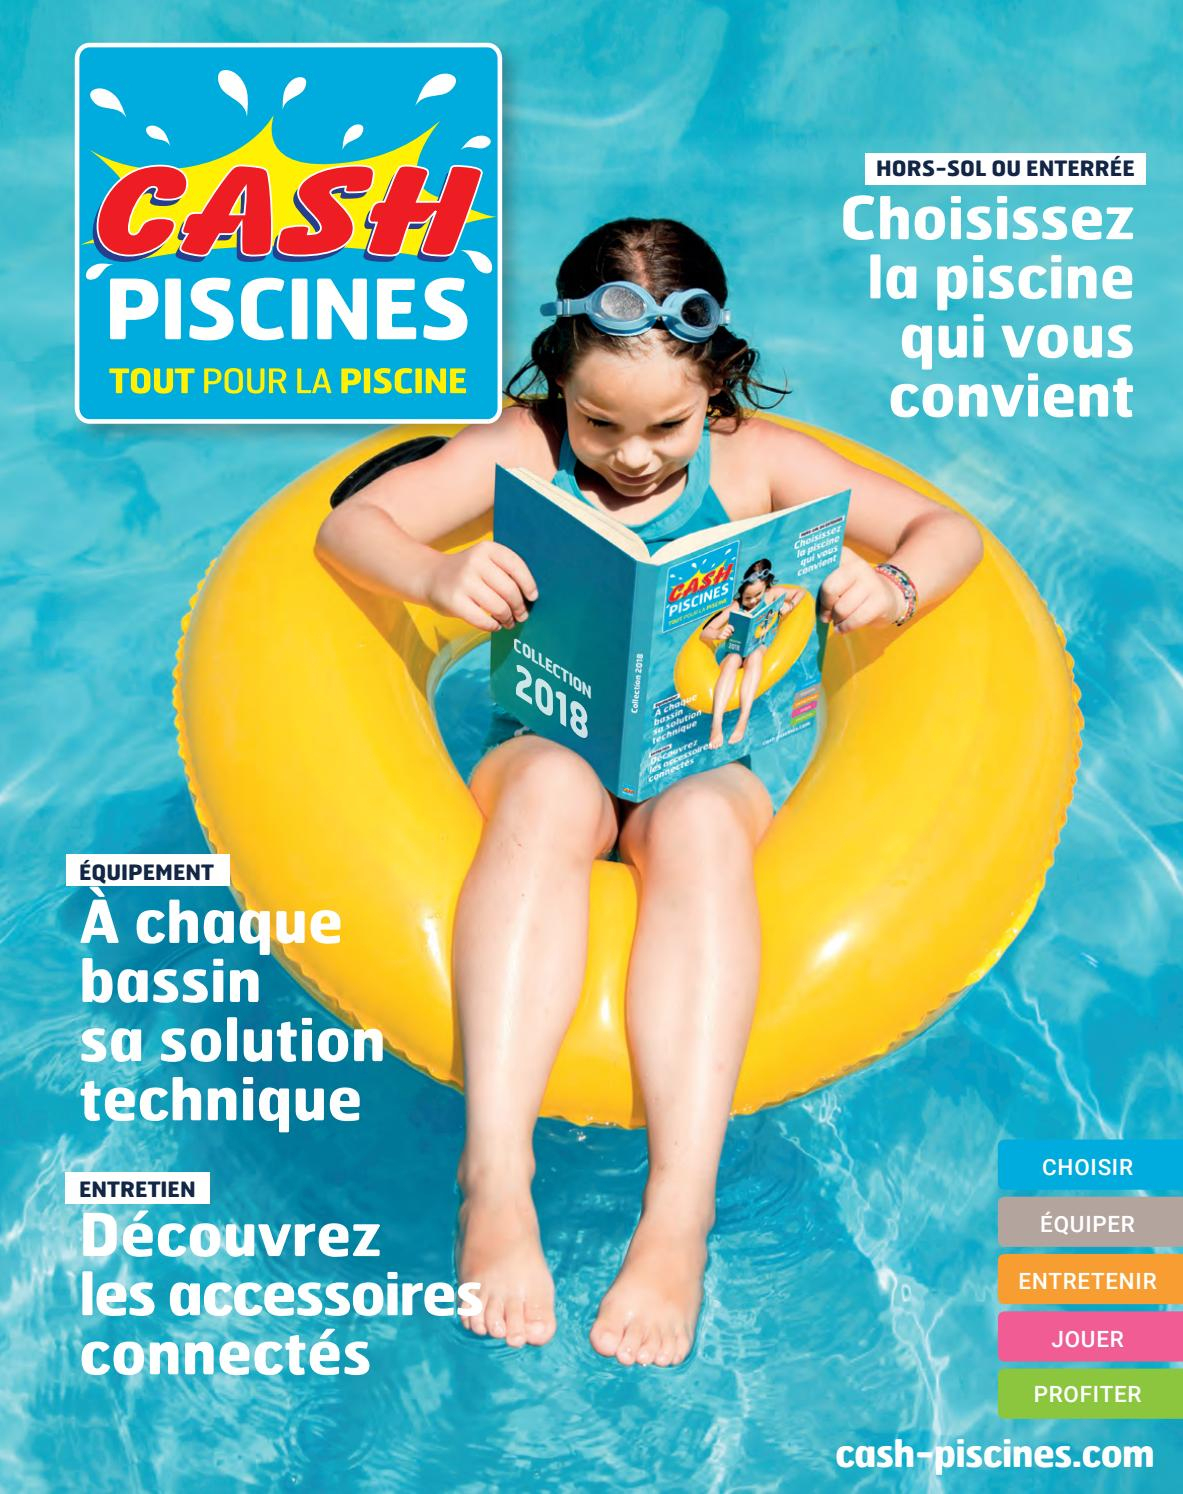 Catalogue Cash Piscine 2018 By Octave Octave - Issuu tout Cash Piscine Bourg De Peage